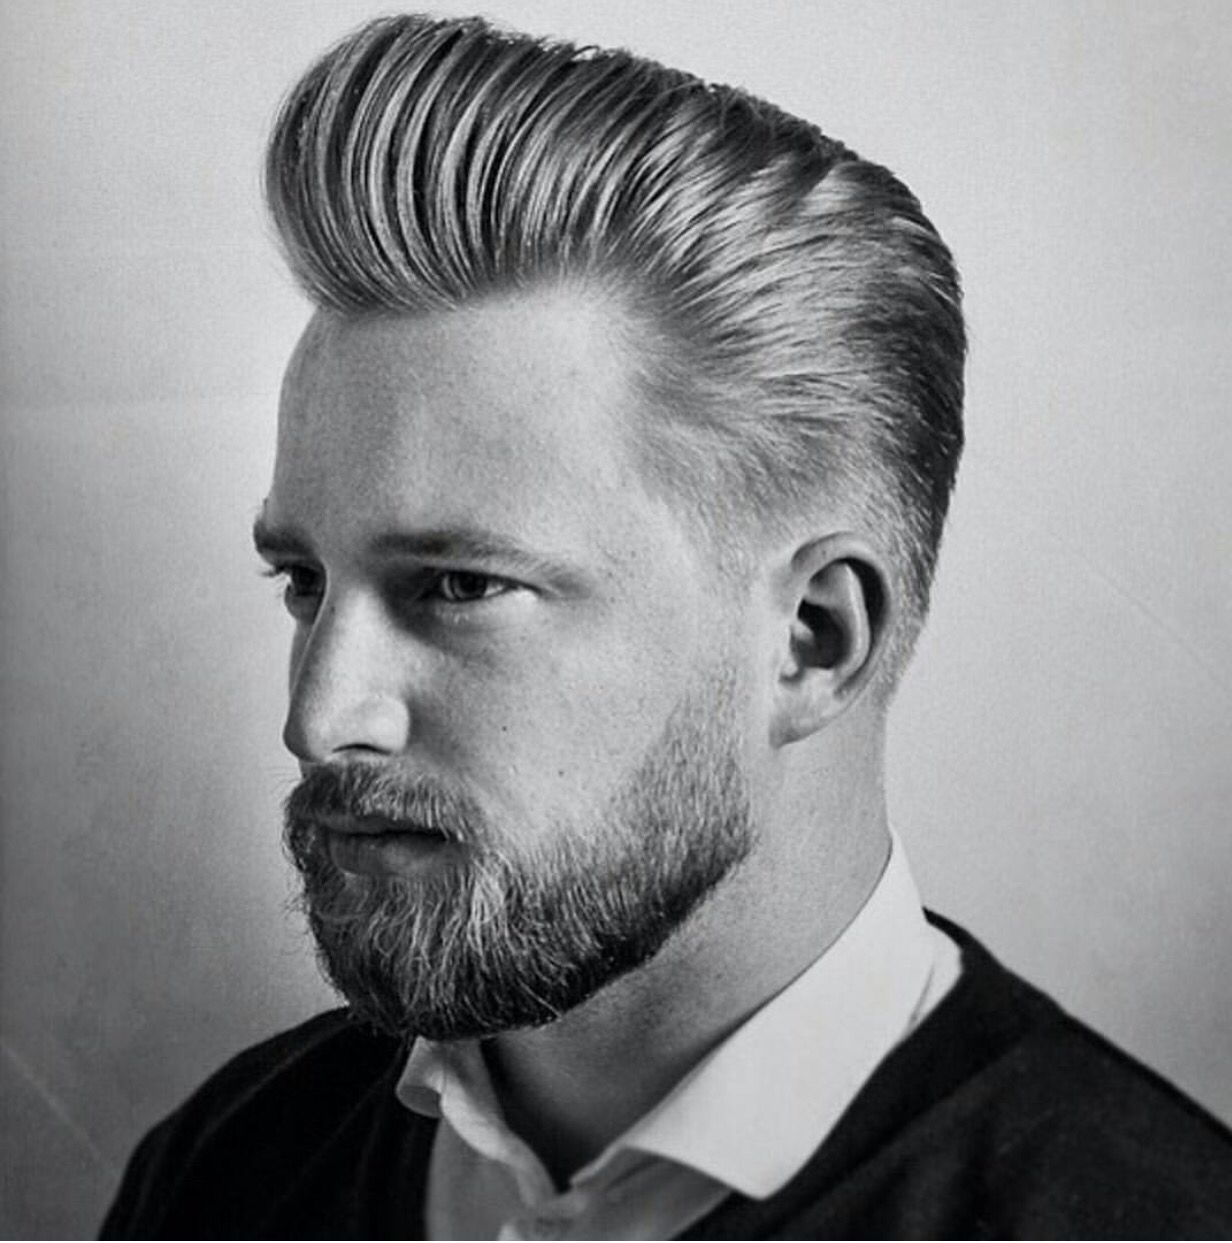 Mens professional haircuts stunning pompadour  awesome hairstyle  pinterest  pompadour and